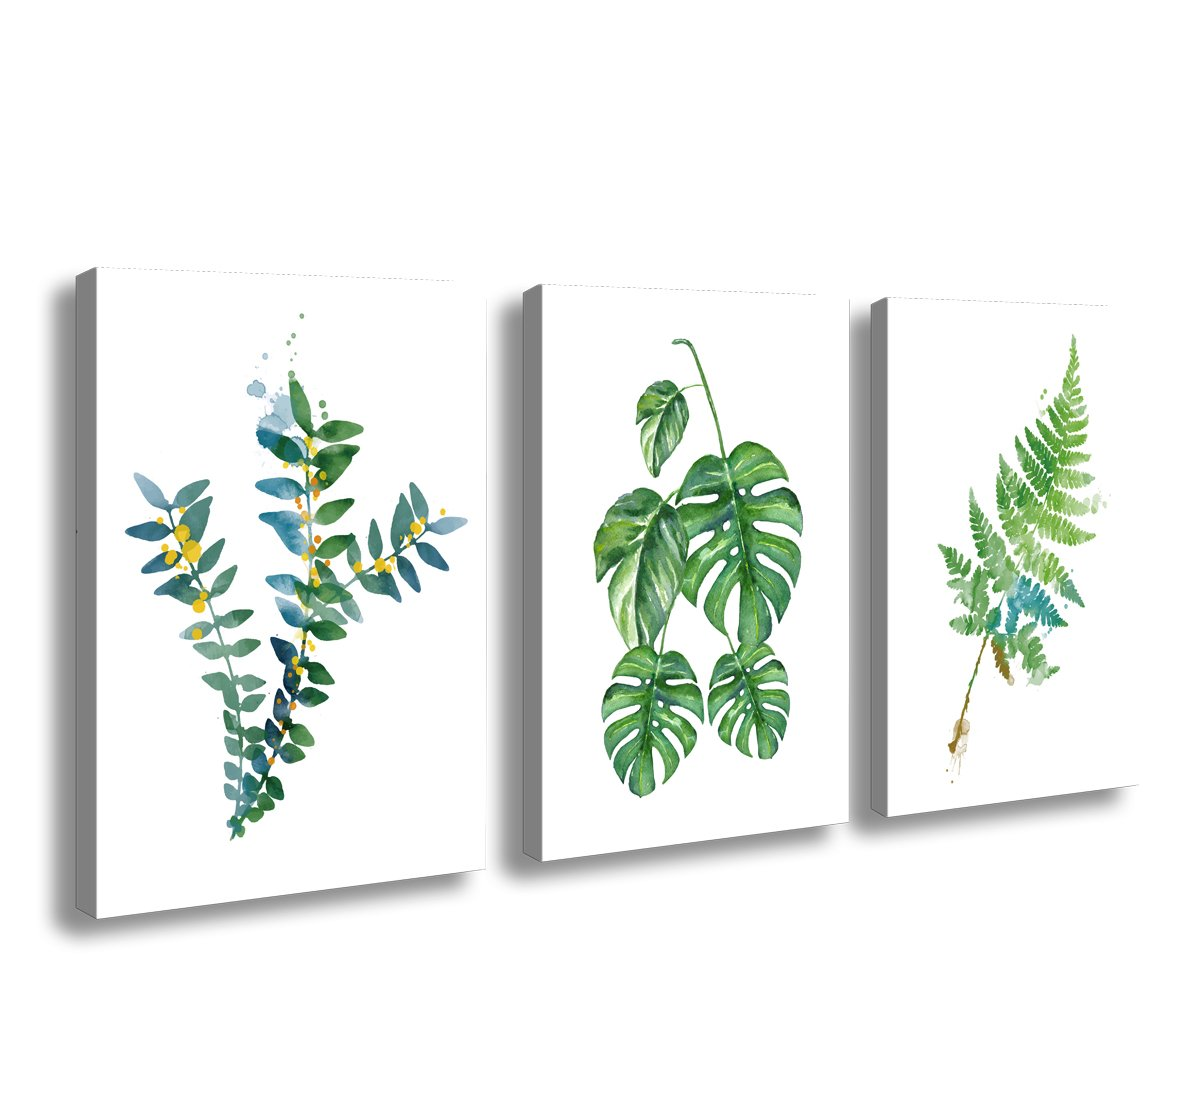 """H72334 Canvas Wall Art Watercolor Green Leaf Canvas Painting Wall Art for Home Wall Decor - Wall Art Size: 12""""x16""""x3pcs (30cmx40cmx3pcs). framed and ready to hang A perfect wall decorations paintings for living room, bedroom, kitchen, office, Hotel, dining room, office, bar etc.. Due to different brand of monitors, actual wall art colors may be slightly different from the product image. Fast shipping and zero risk. 30 days 100% refund guarantee without any reason after receipt. - wall-art, living-room-decor, living-room - 61%2BRkAPwltL -"""